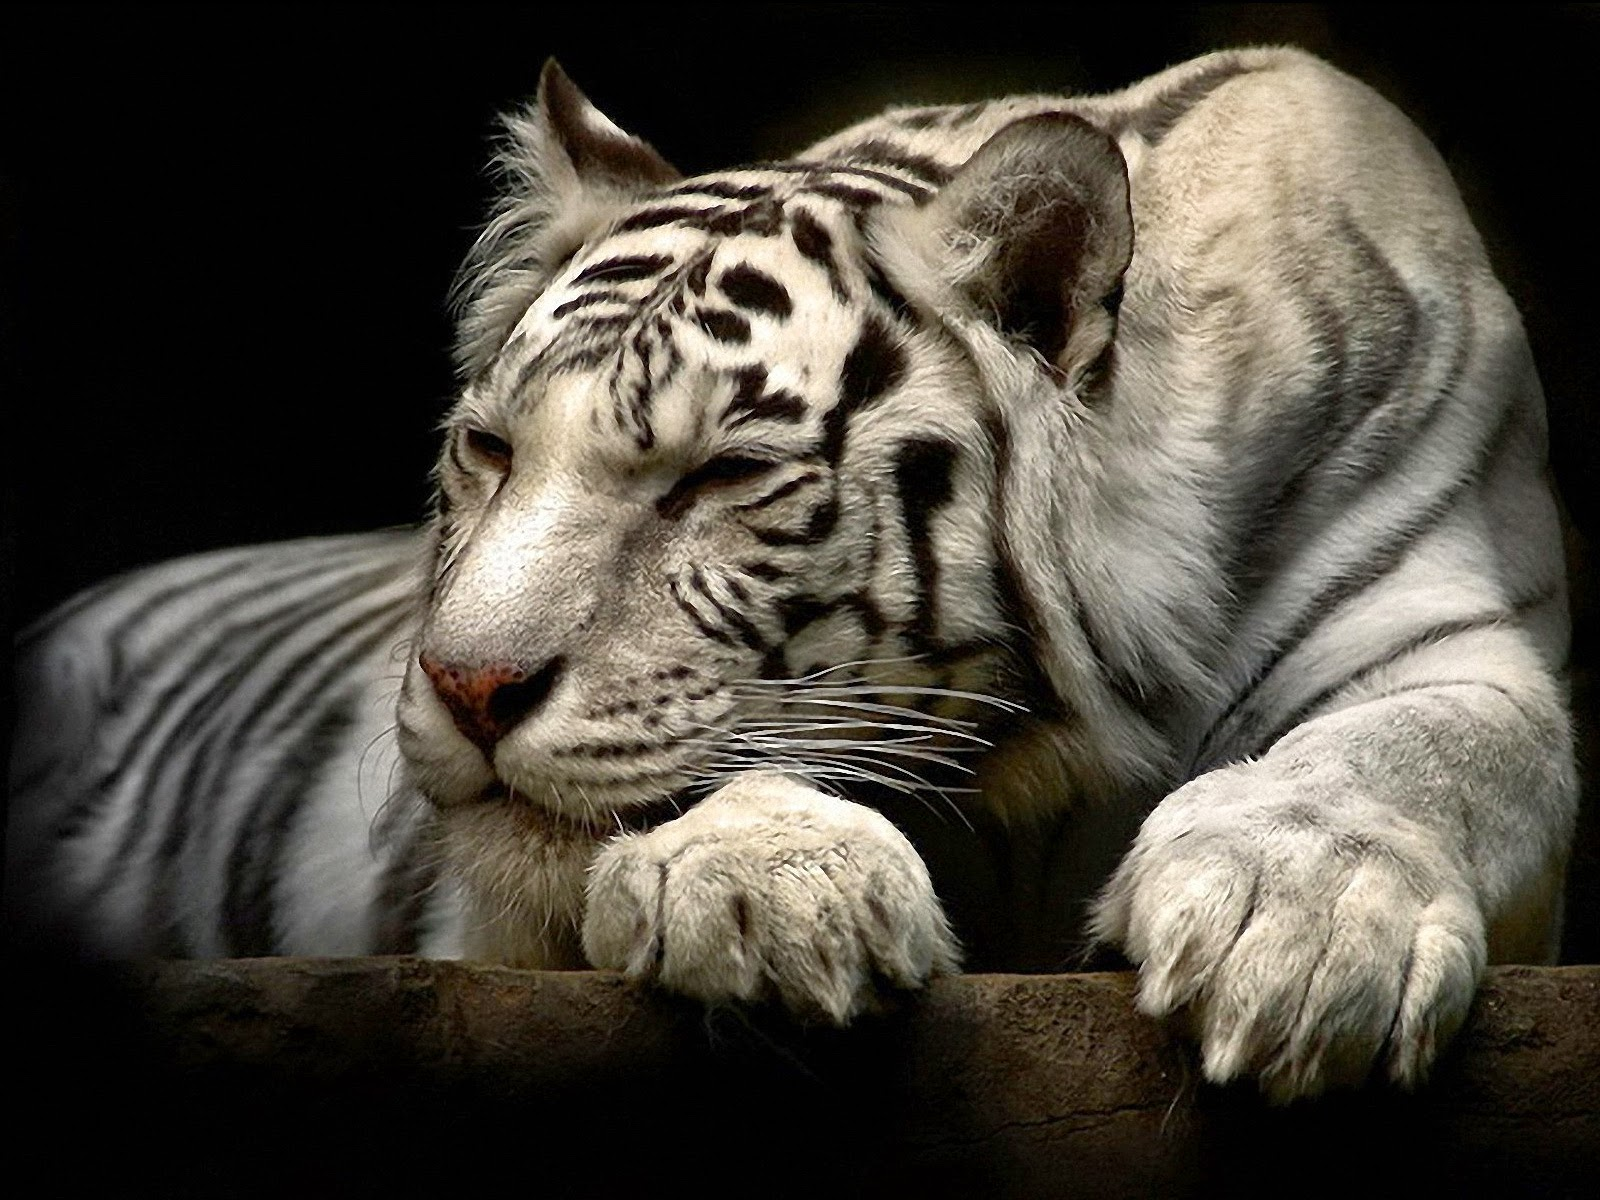 white tiger 3d anime black wallpaper - free wallpaper hd